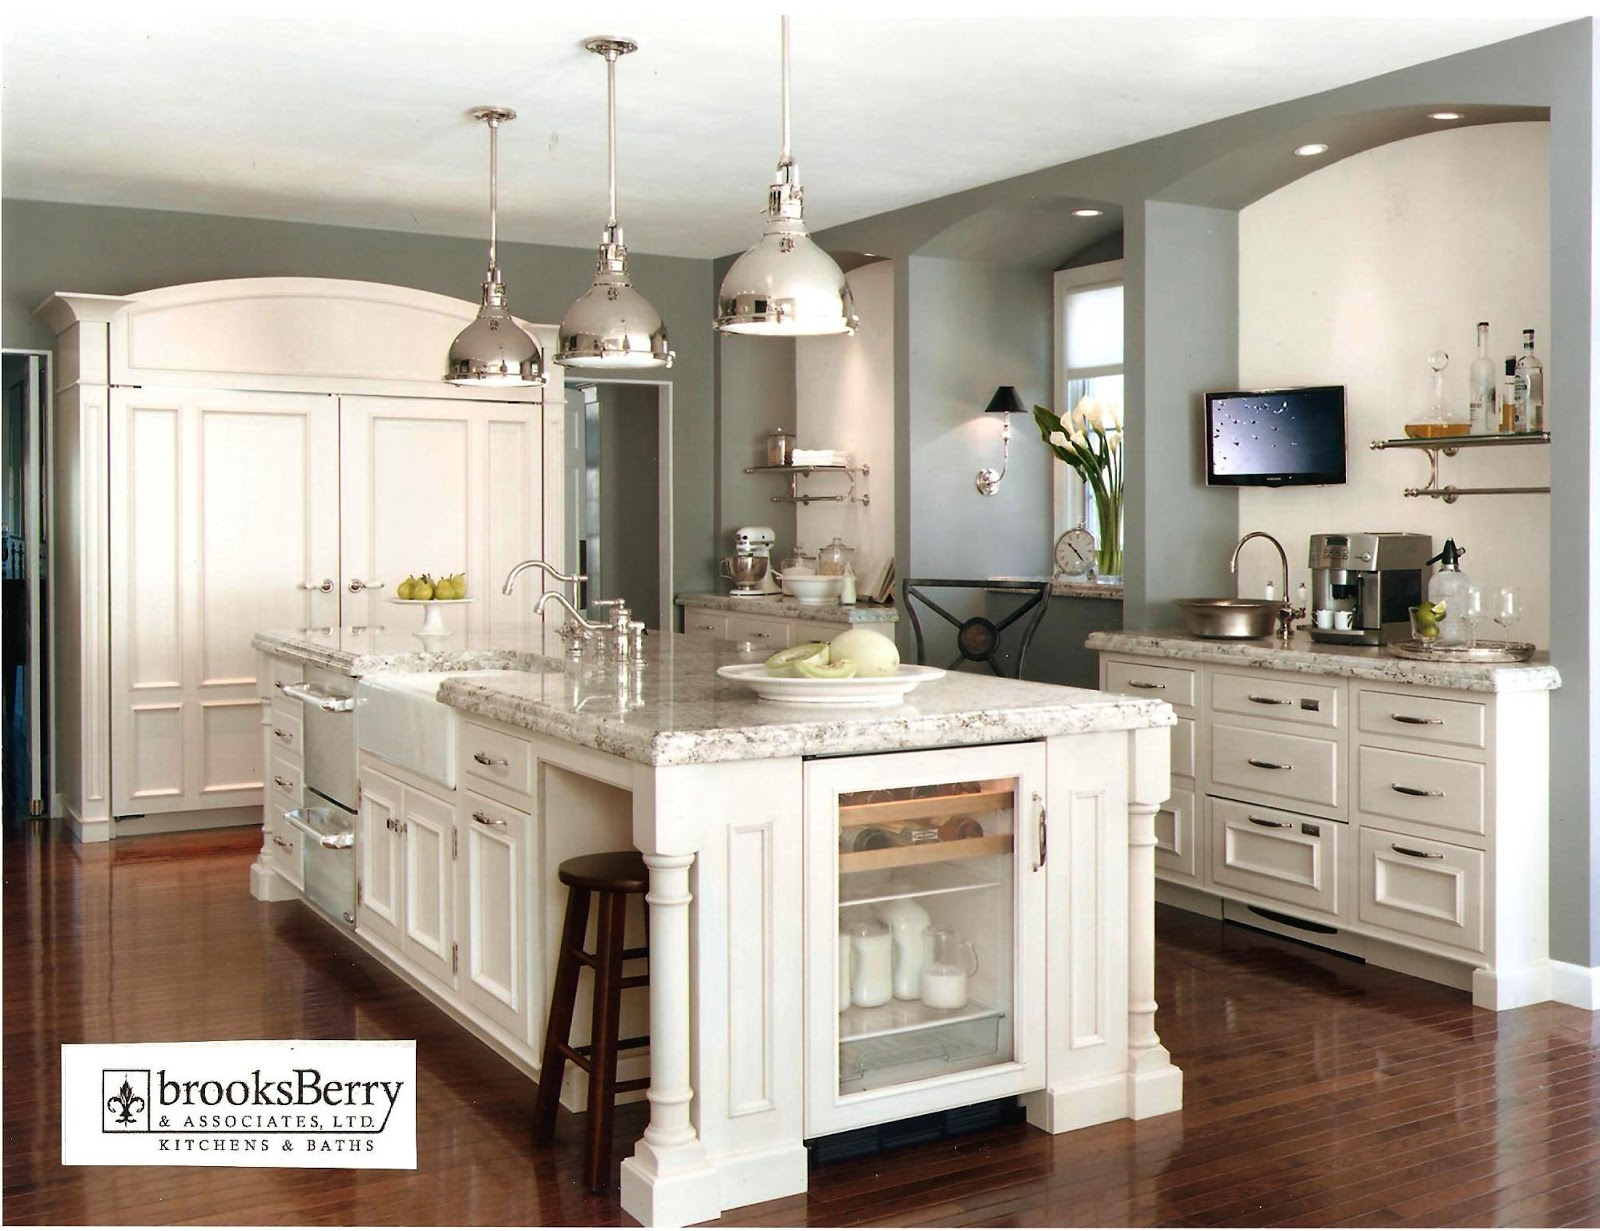 brooksBerry Inspirations: Kitchen by Meals